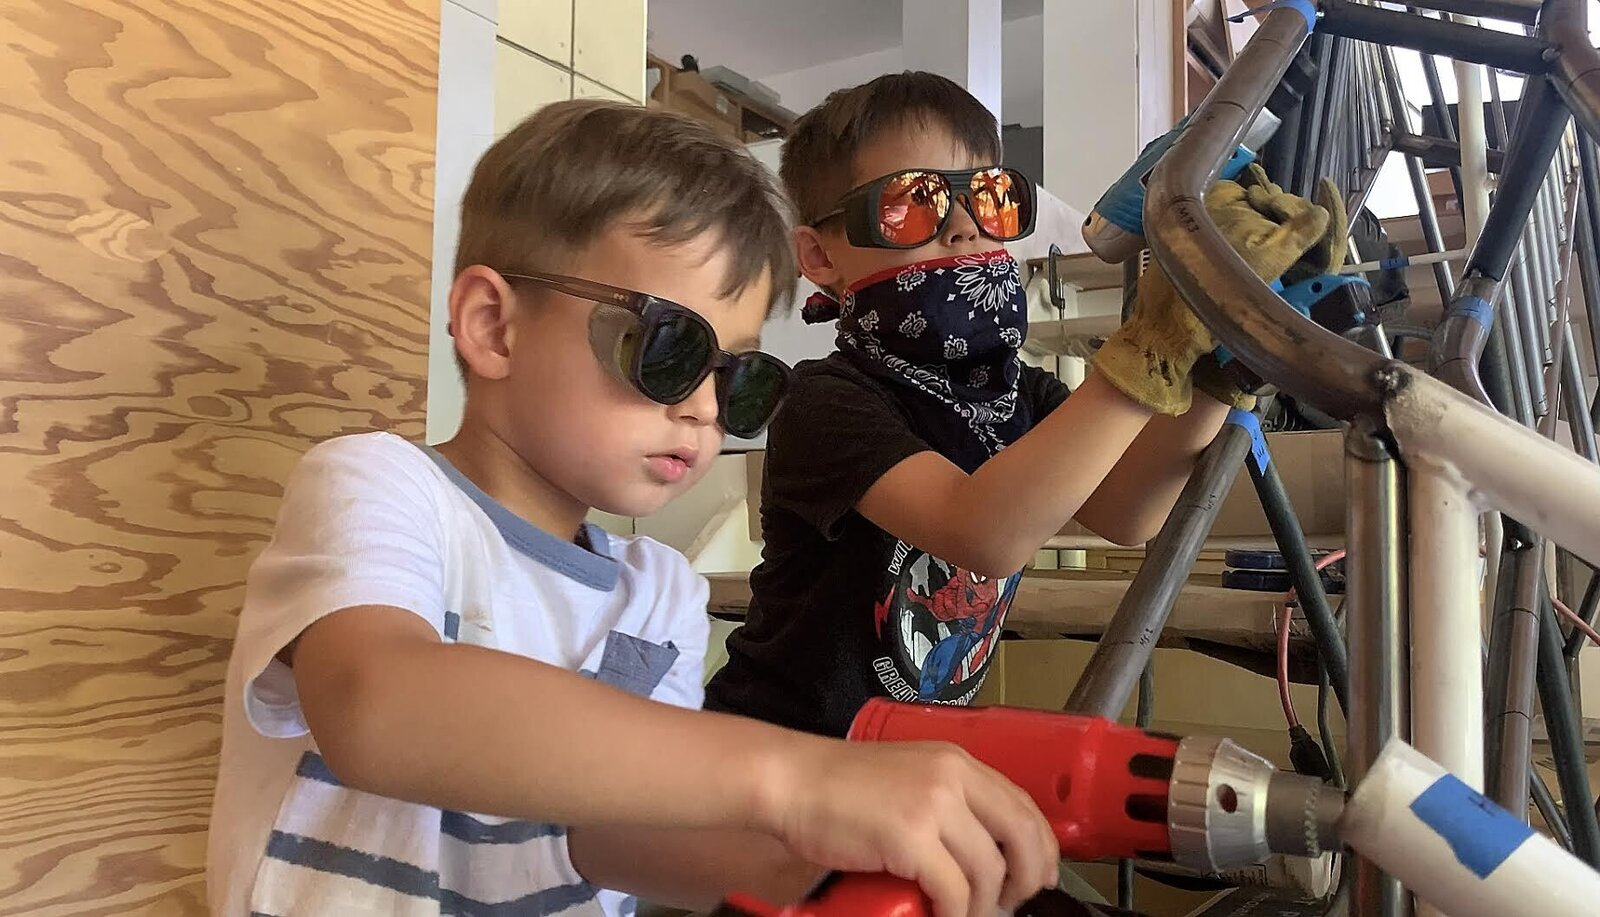 Jenny Wu and Dwayne Oyler of Los Angeles–based Oyler Wu Collaborative have two boys, Ariel (front) and Emery (back), who brought their toy tools to work on their family's studio space.  Photo 4 of 10 in 10 Designers and Architects Share What They're Most Thankful for in a Turbulent Year